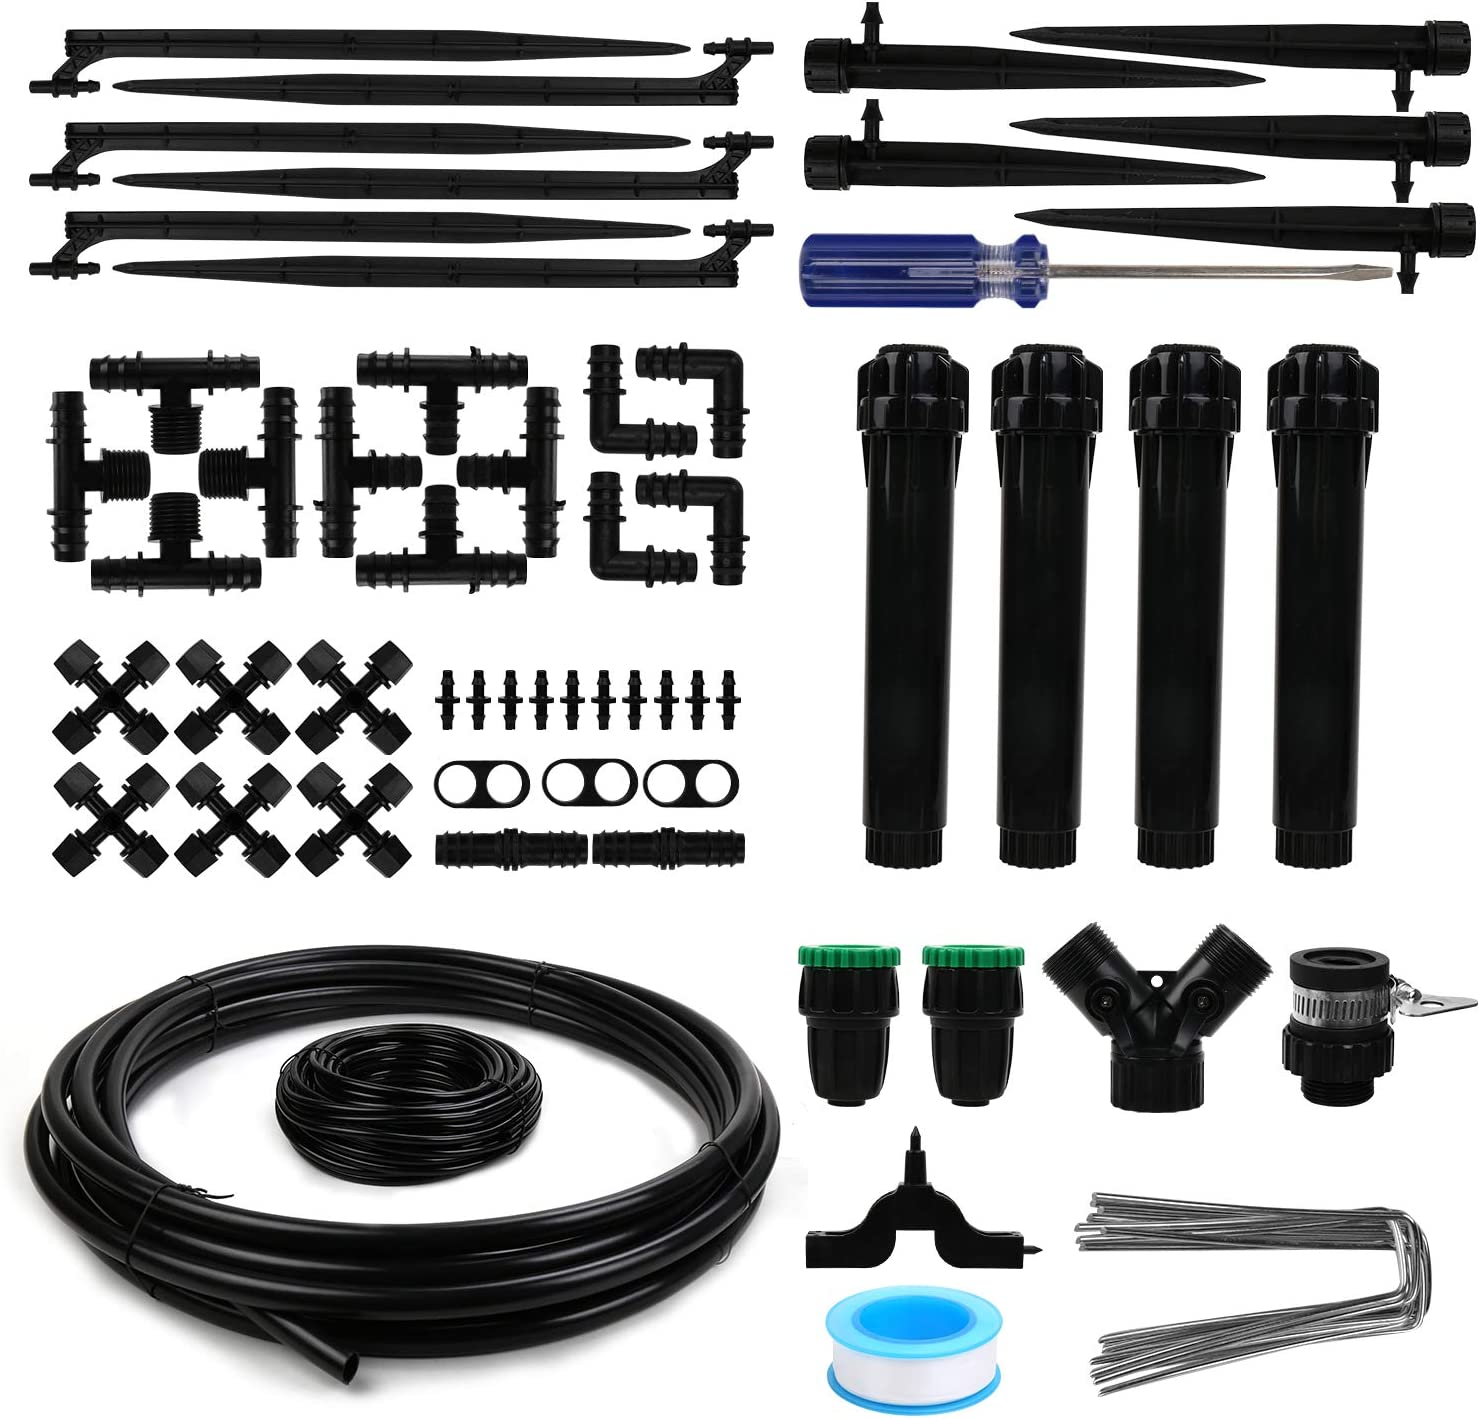 """OUTFANDIA 2020 Garden Irrigation System for Large Garden House. 1/2"""" Blank Distribution Tubing 100ft Watering Drip Kit/DIY Saving Water Automatic Irrigation Equipment Set with Strong Flow."""